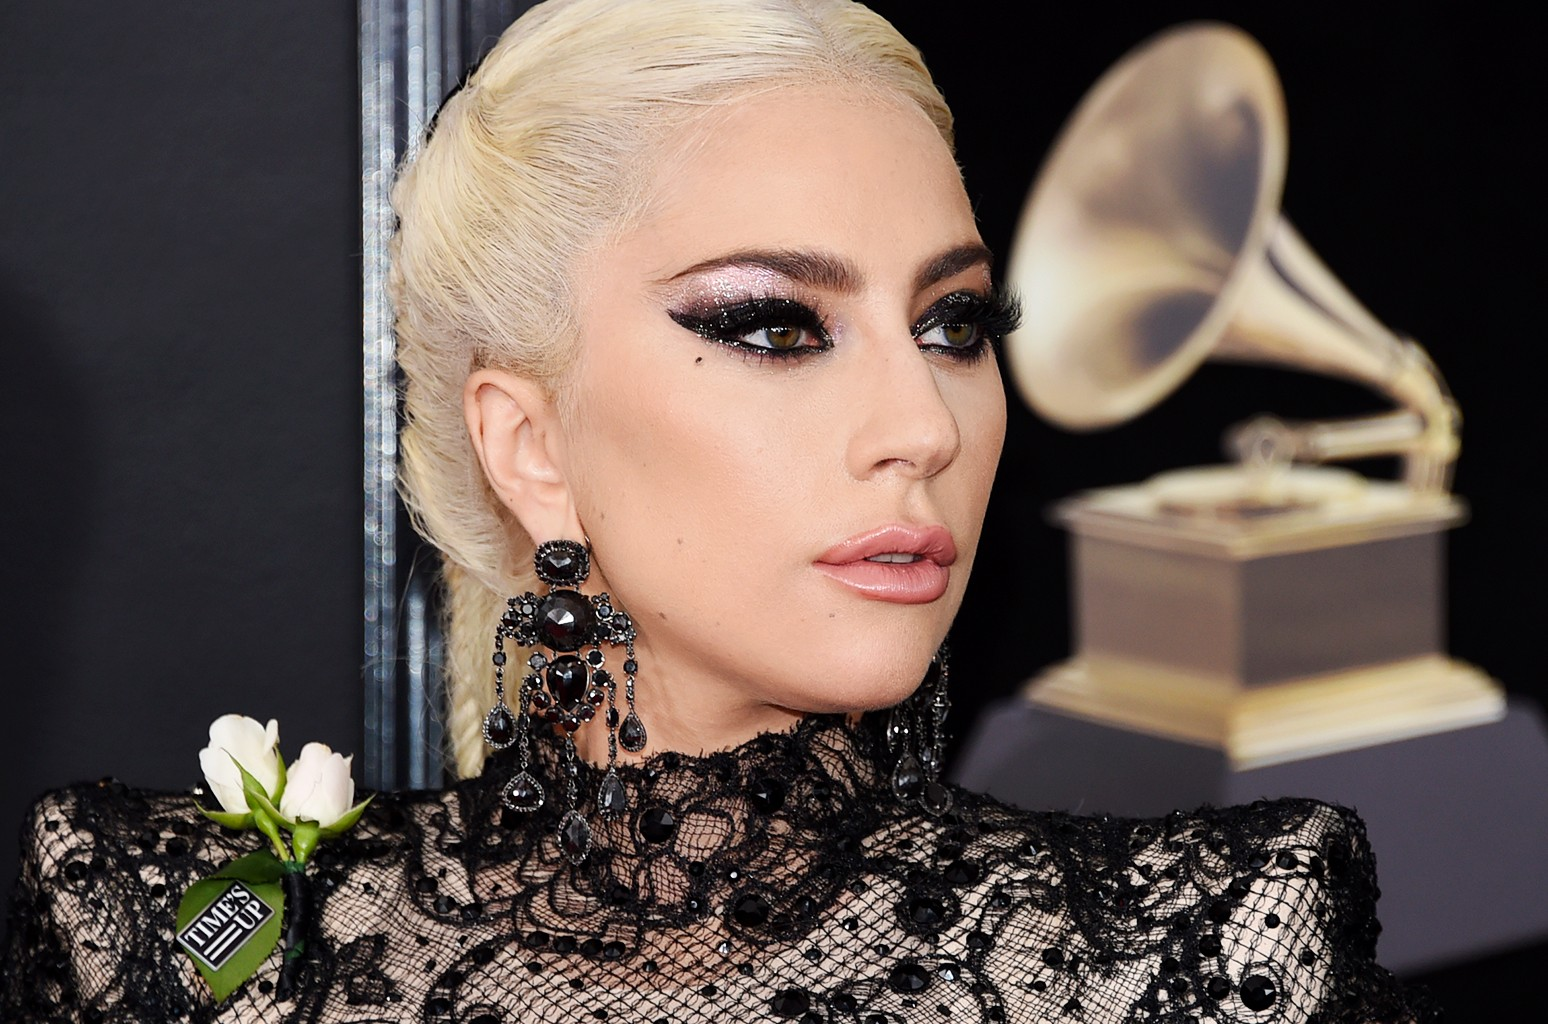 lady gaga among stars wearing white roses on grammys red carpet in support of timesup billboard lady gaga among stars wearing white